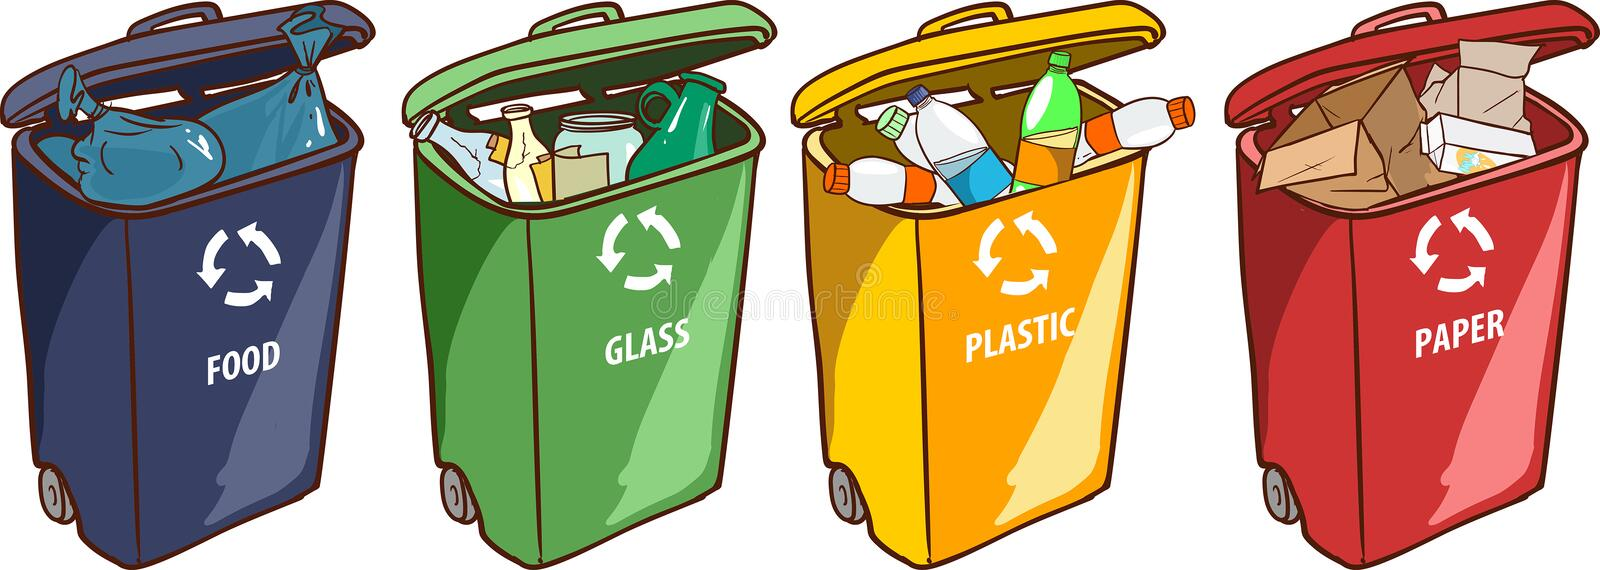 Vector illustration of a Recycling Bins for Paper Plastic Glass royalty free illustration